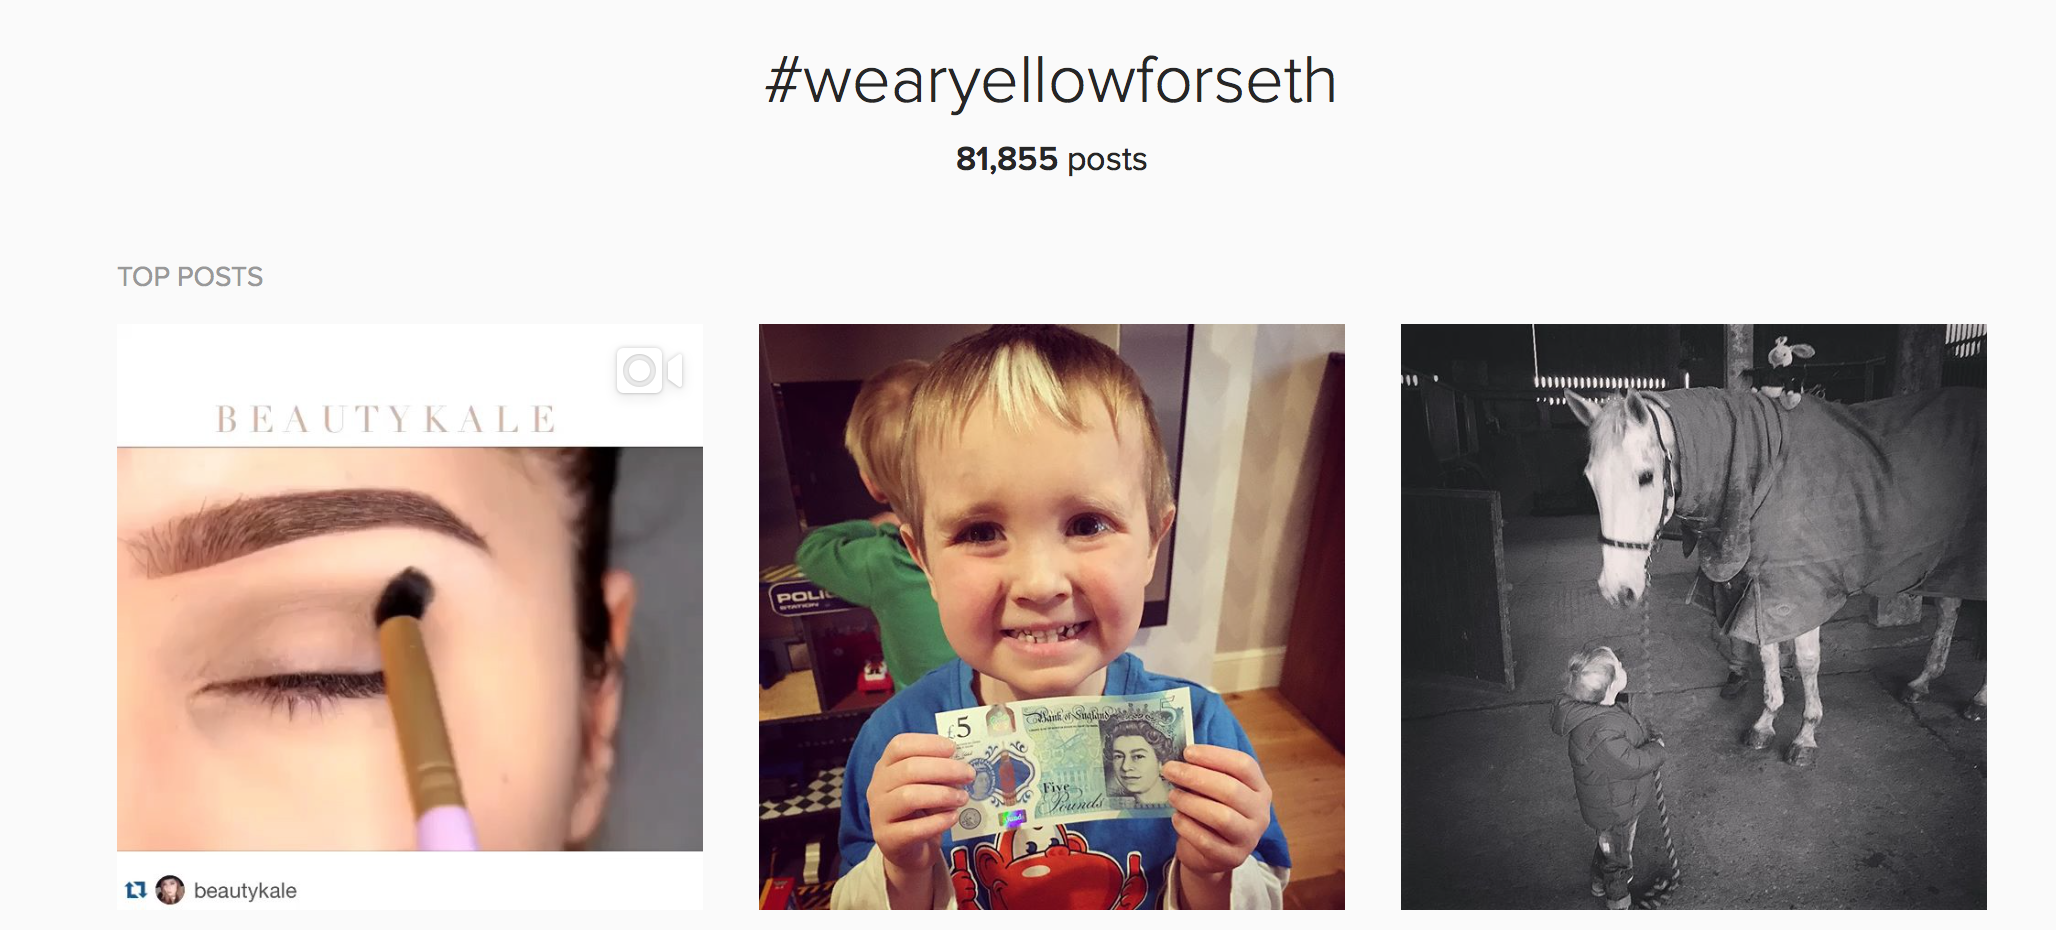 instagram hashtag results